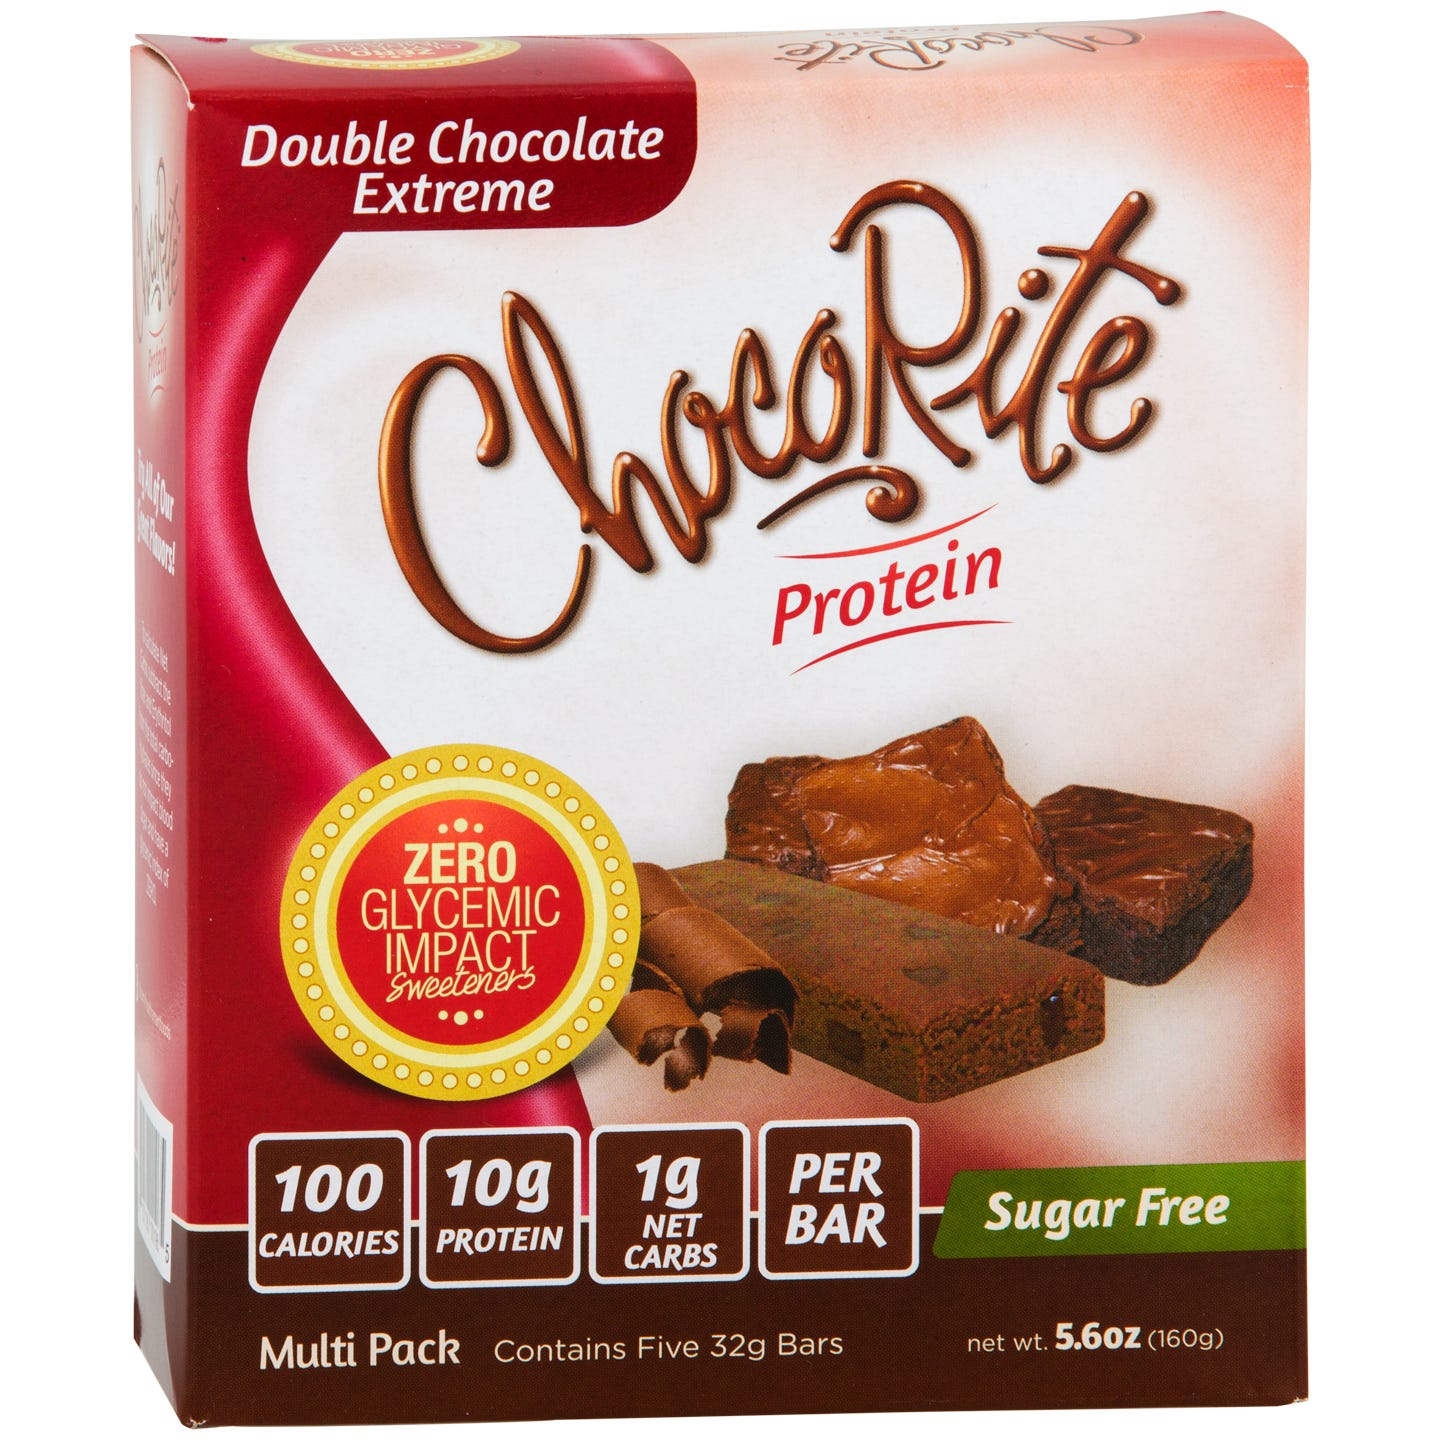 Sugar Free Protein Bar, Double Chocolate Extreme (5 Bars) – ChocoRite